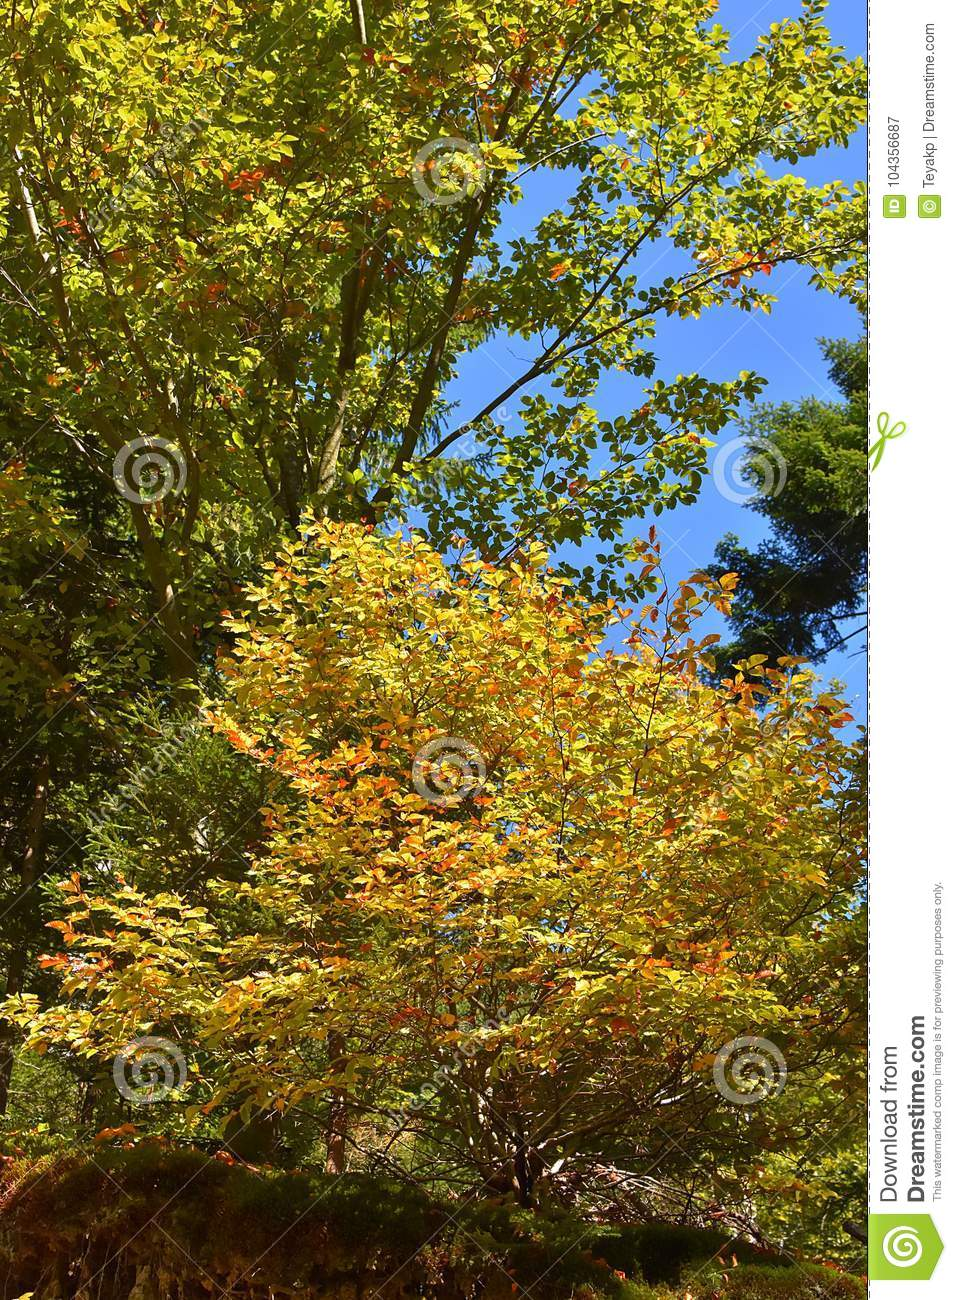 The colors of autumn in forest